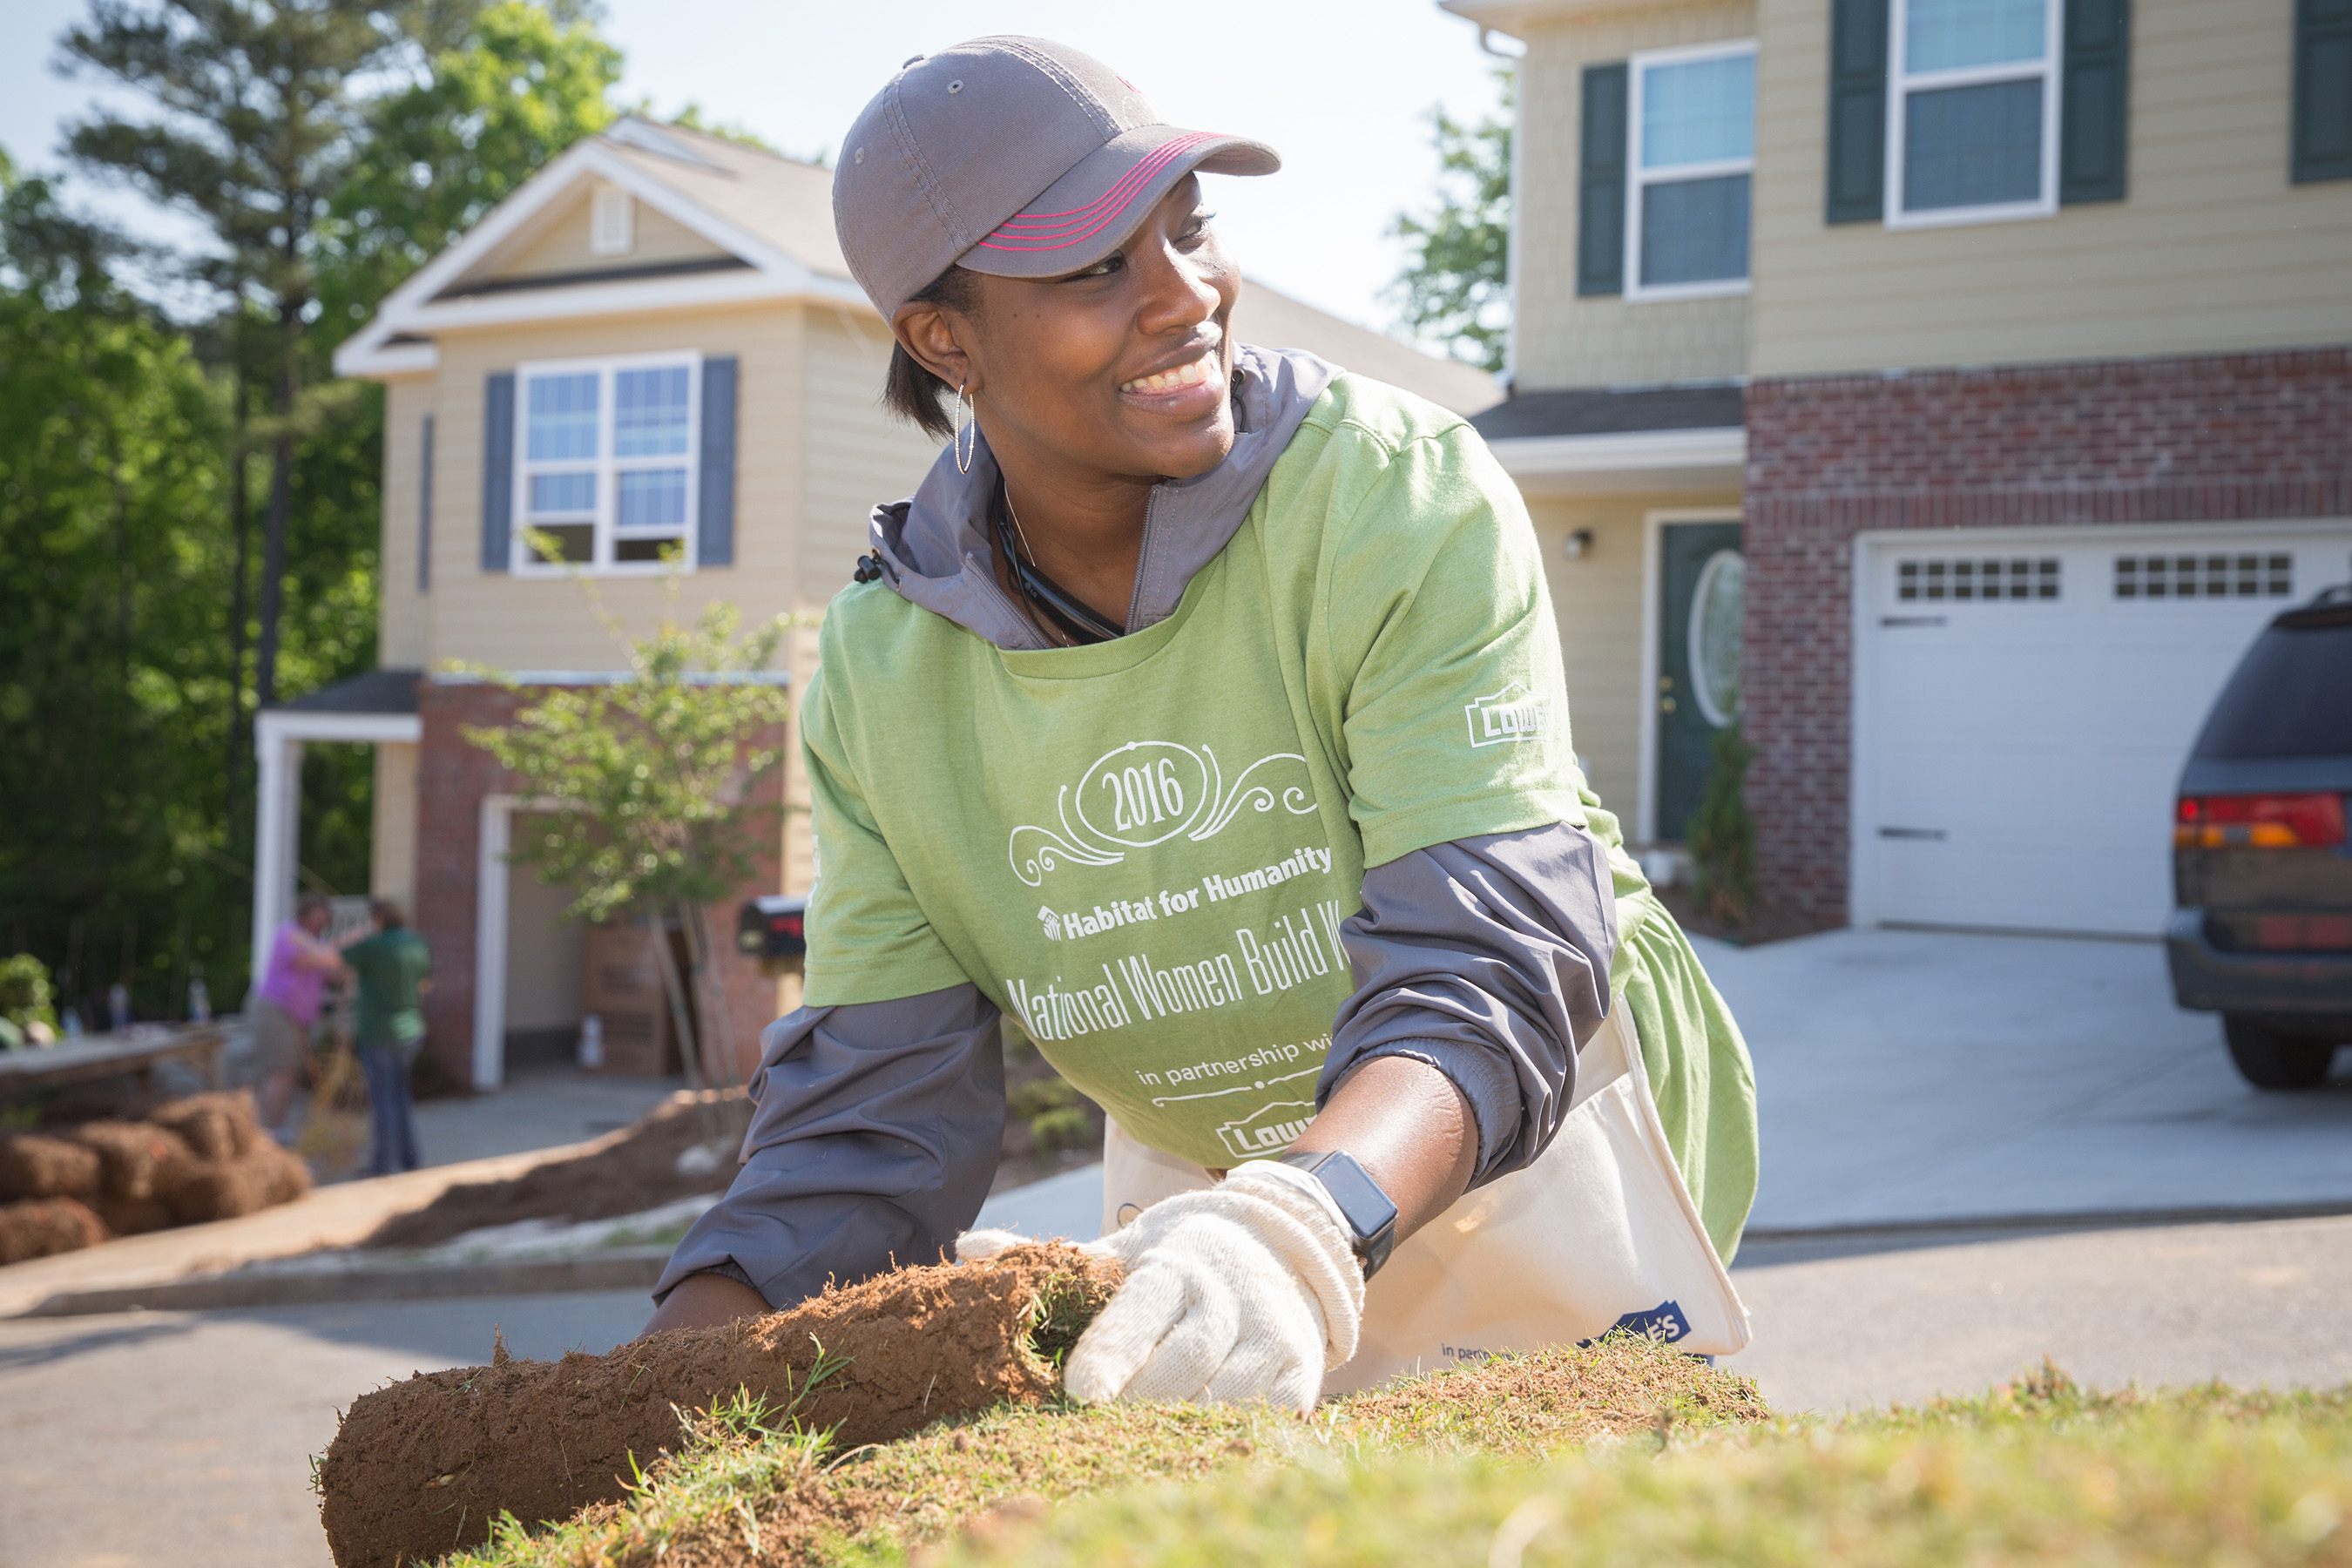 Thousands of women build up communities and each other with Habitat for Humanity and Lowe's